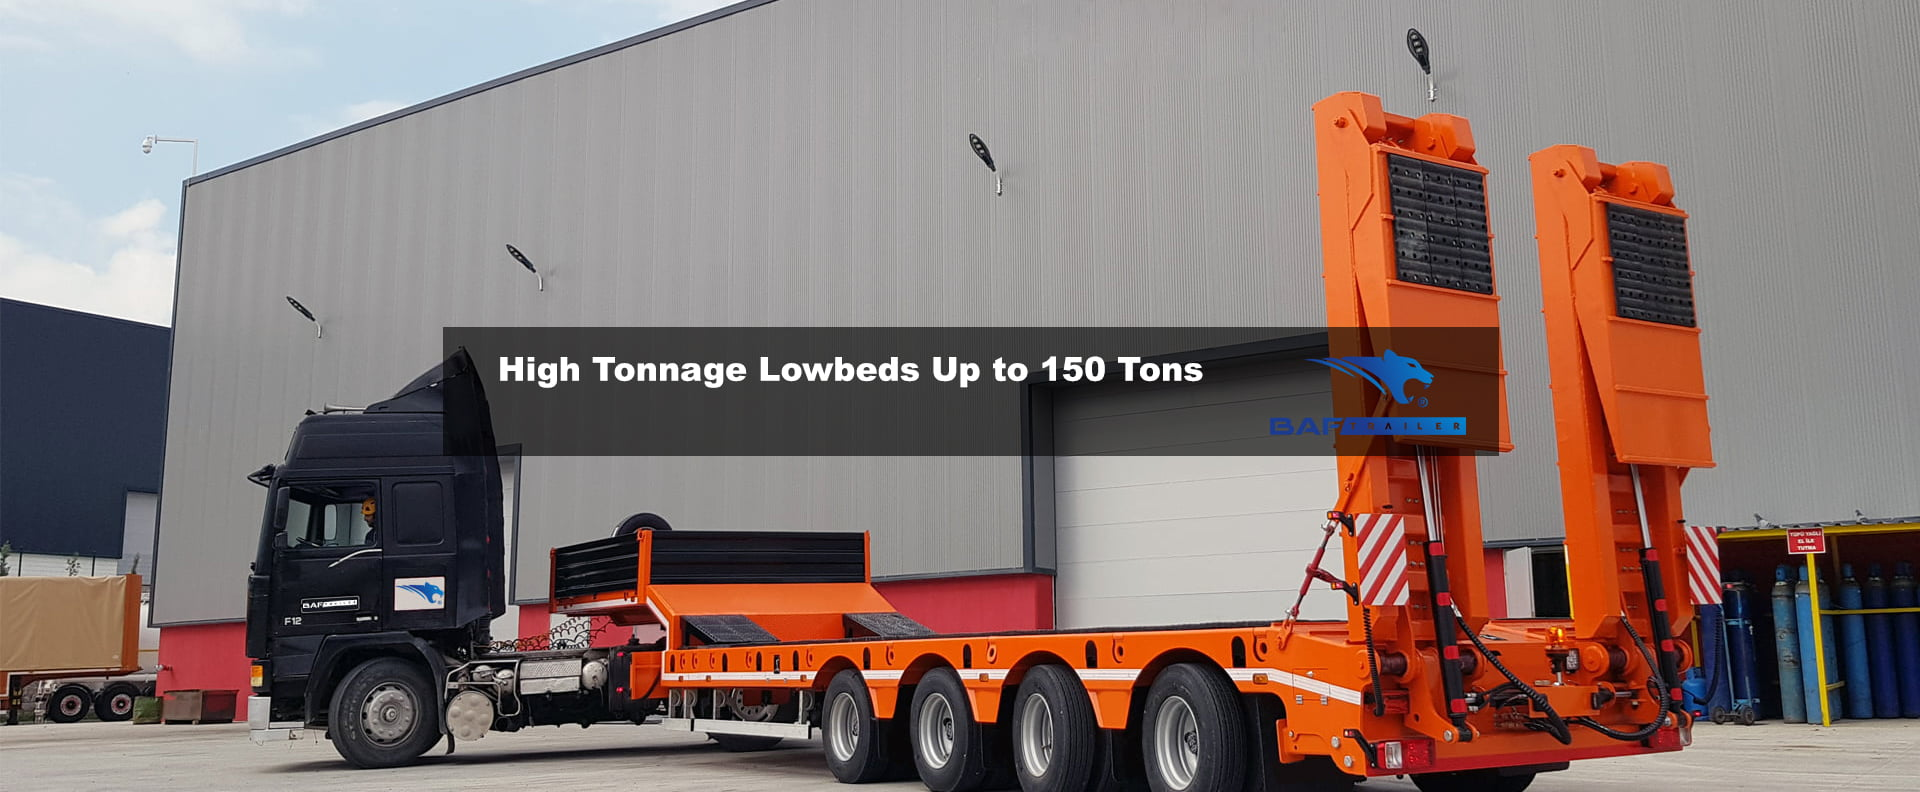 High Tonnage Lowbeds Up to 150 Tons